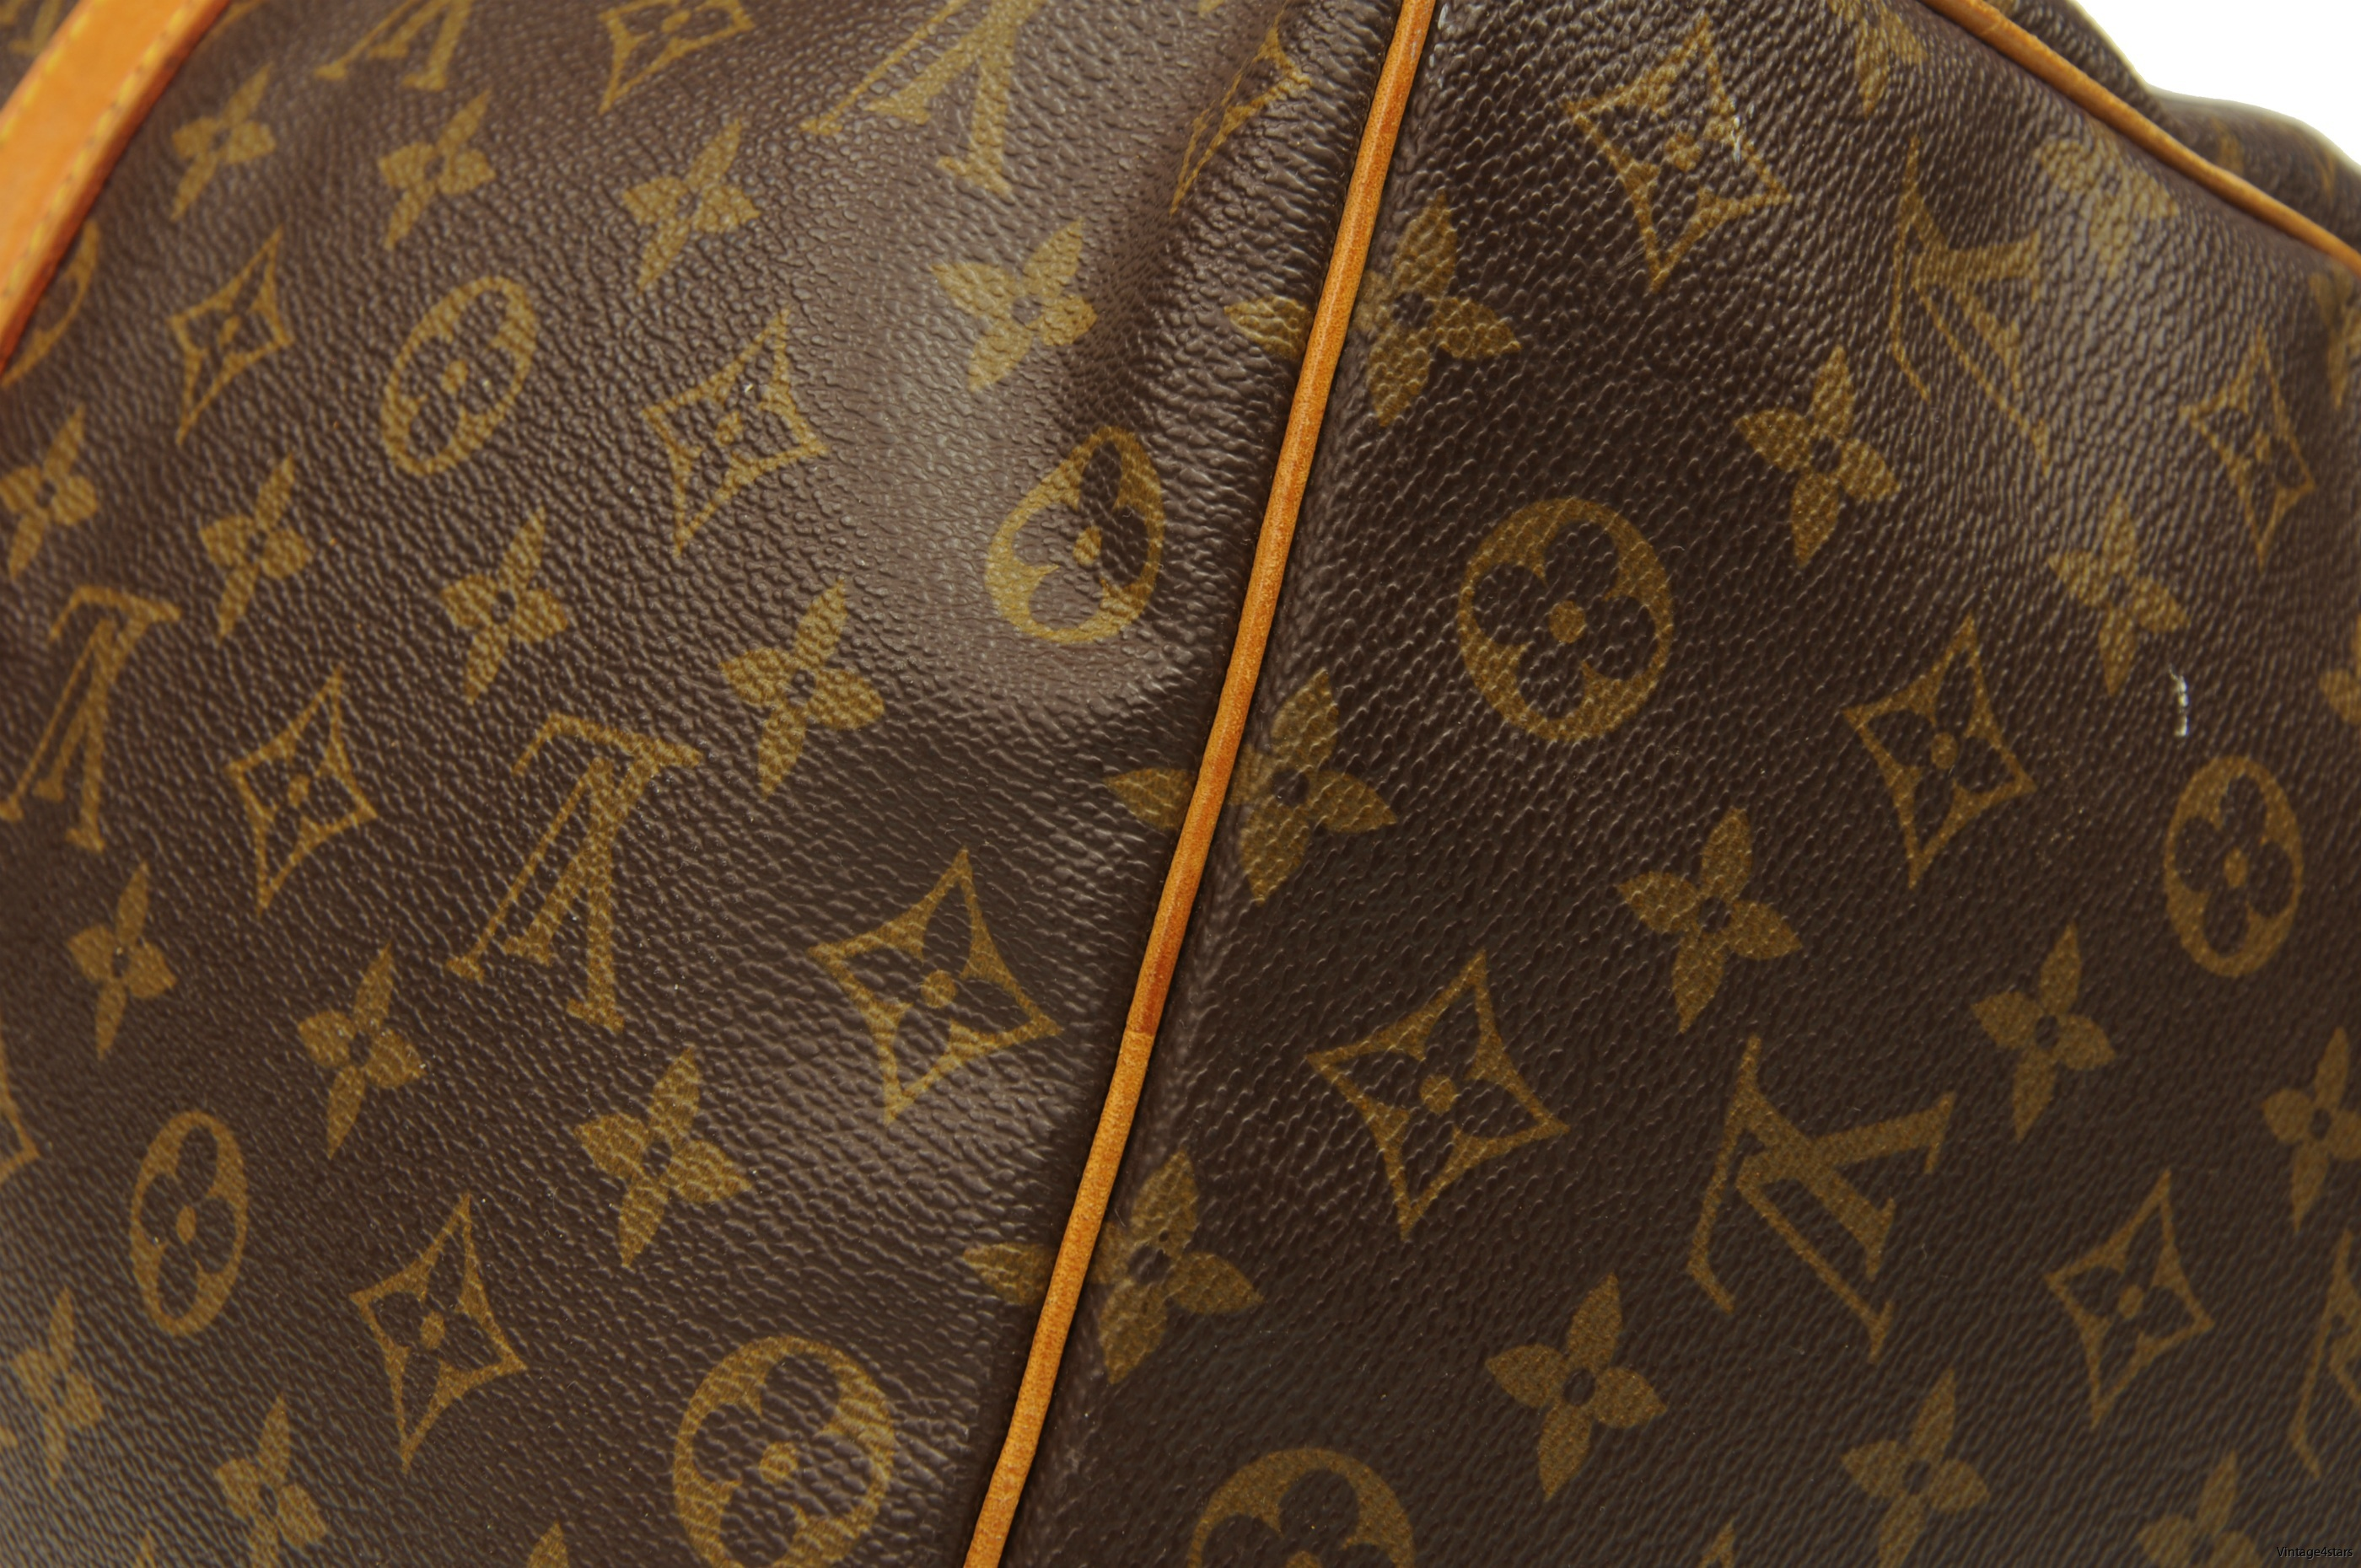 Louis vuitton Keepall 45 207